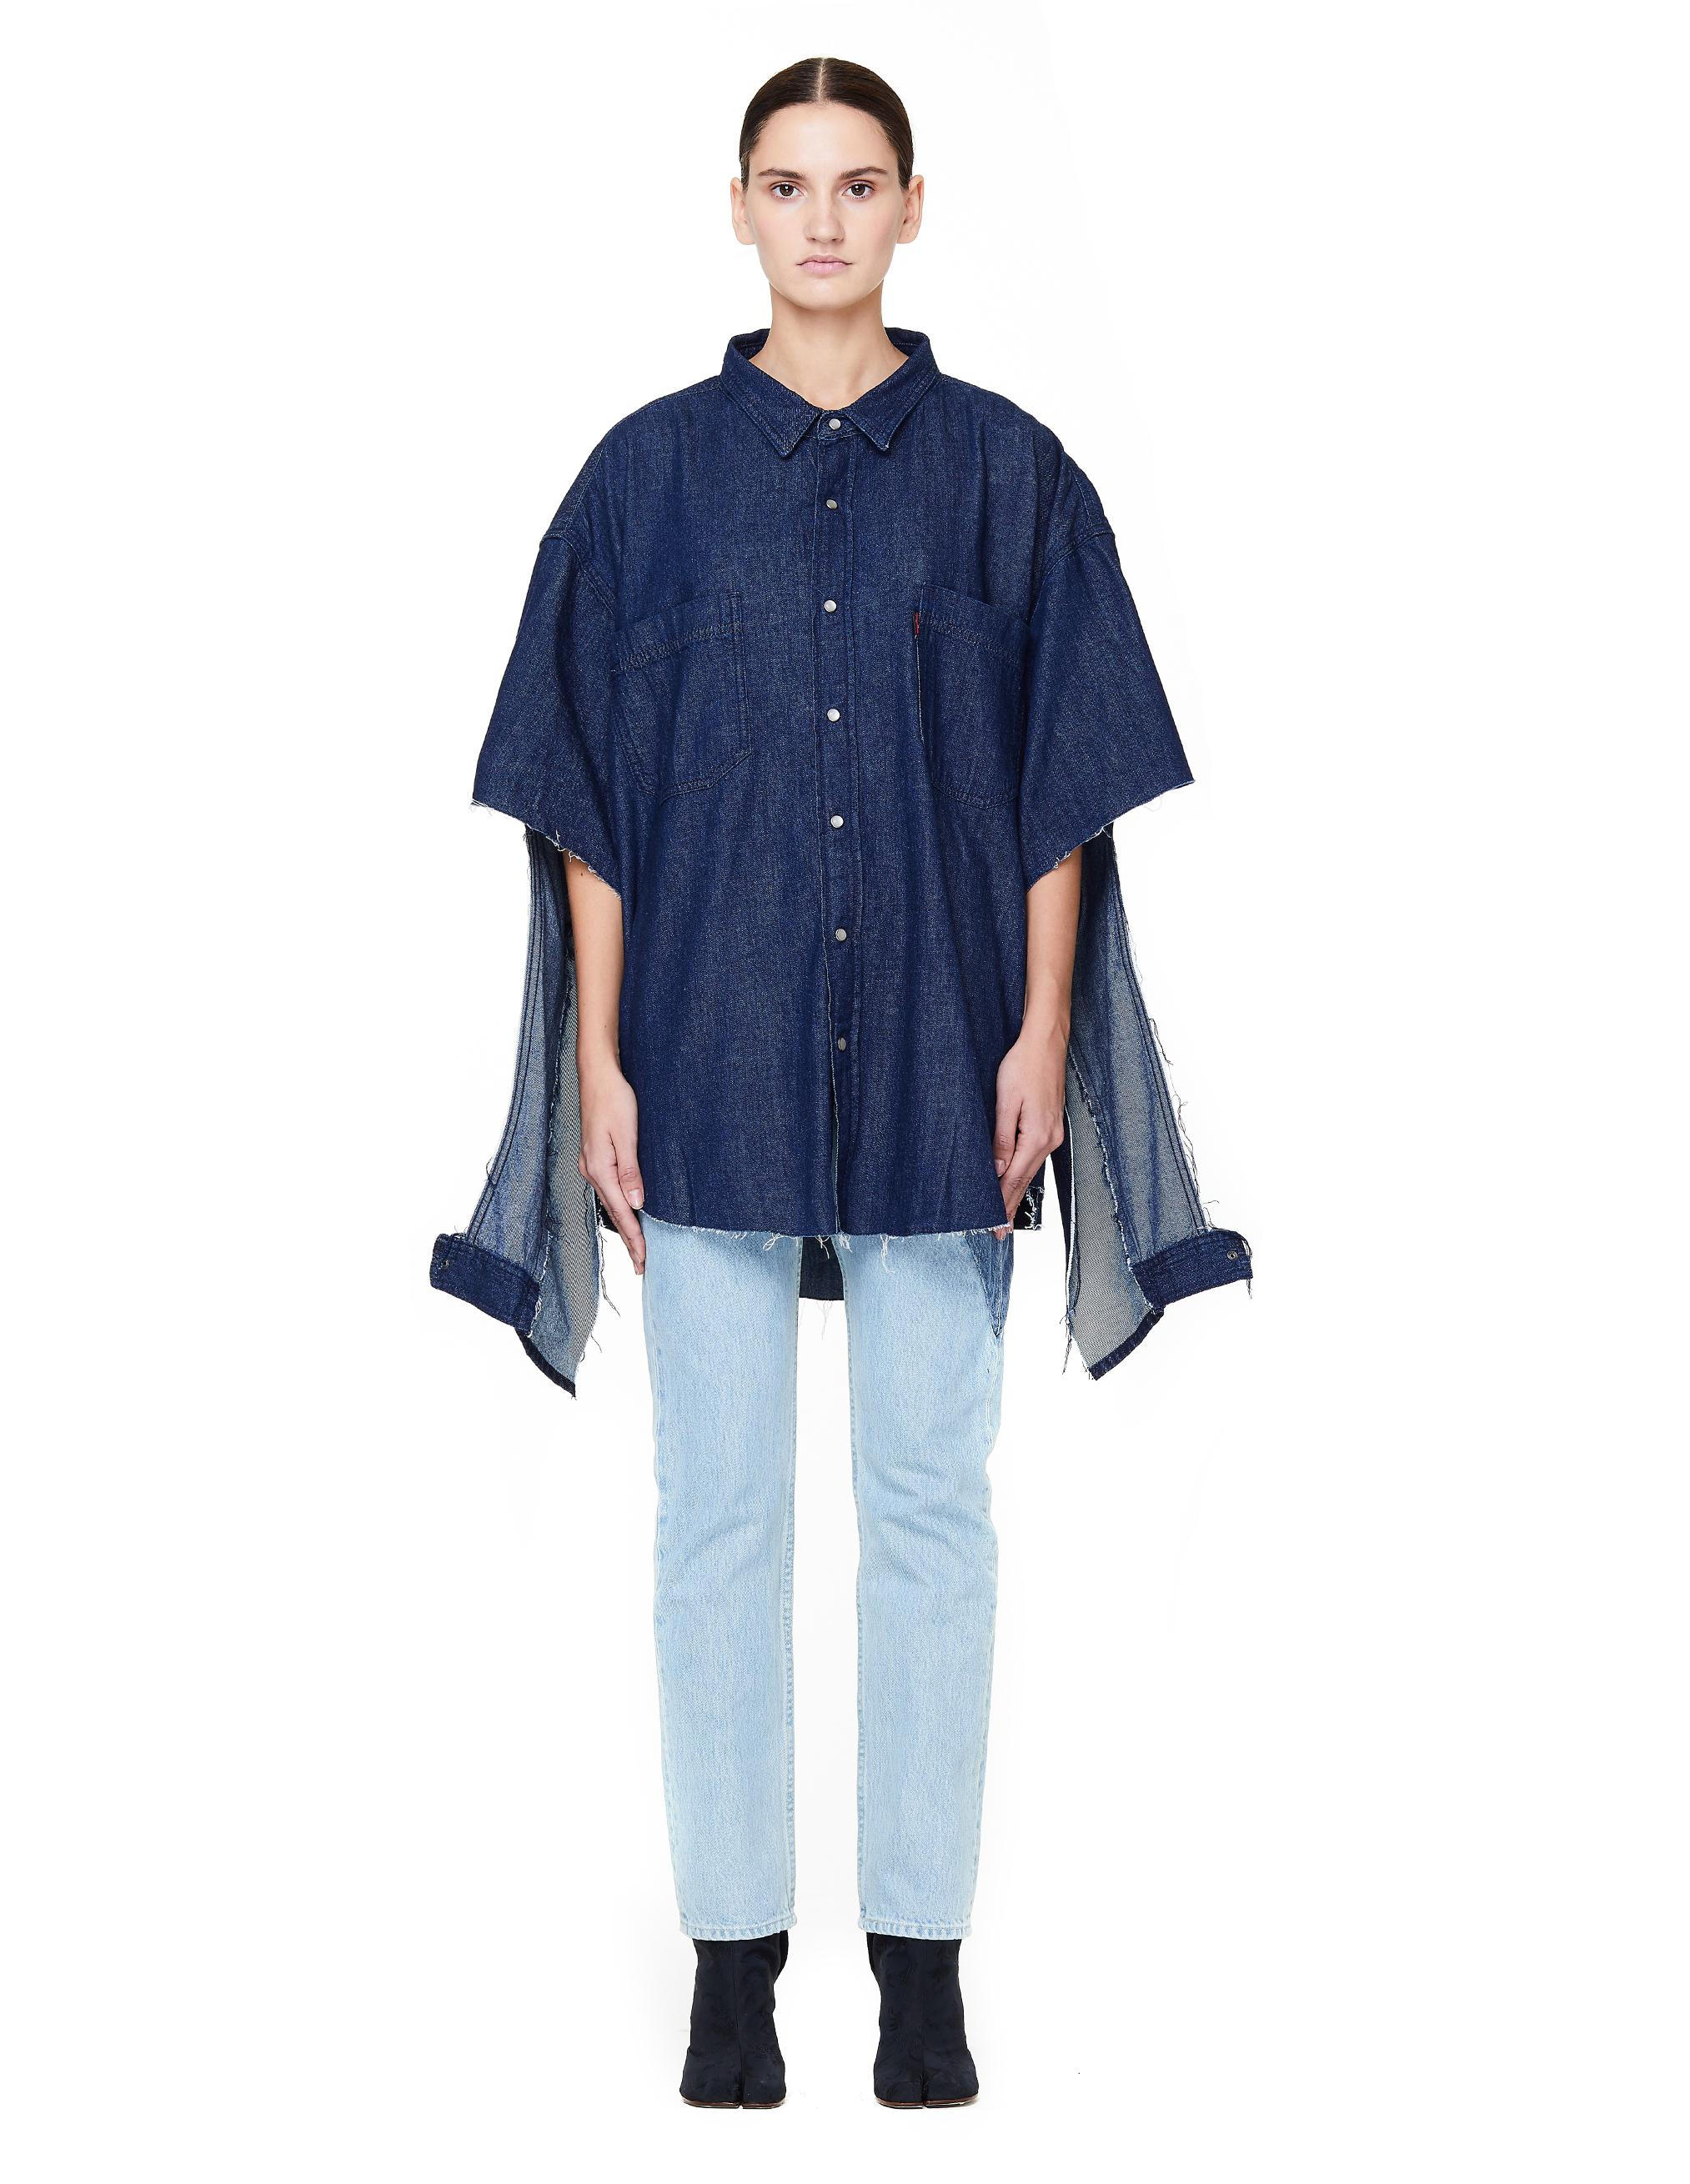 b52bf4c10b5 Vetements Oversized Denim Shirt With Cuts in Blue - Lyst